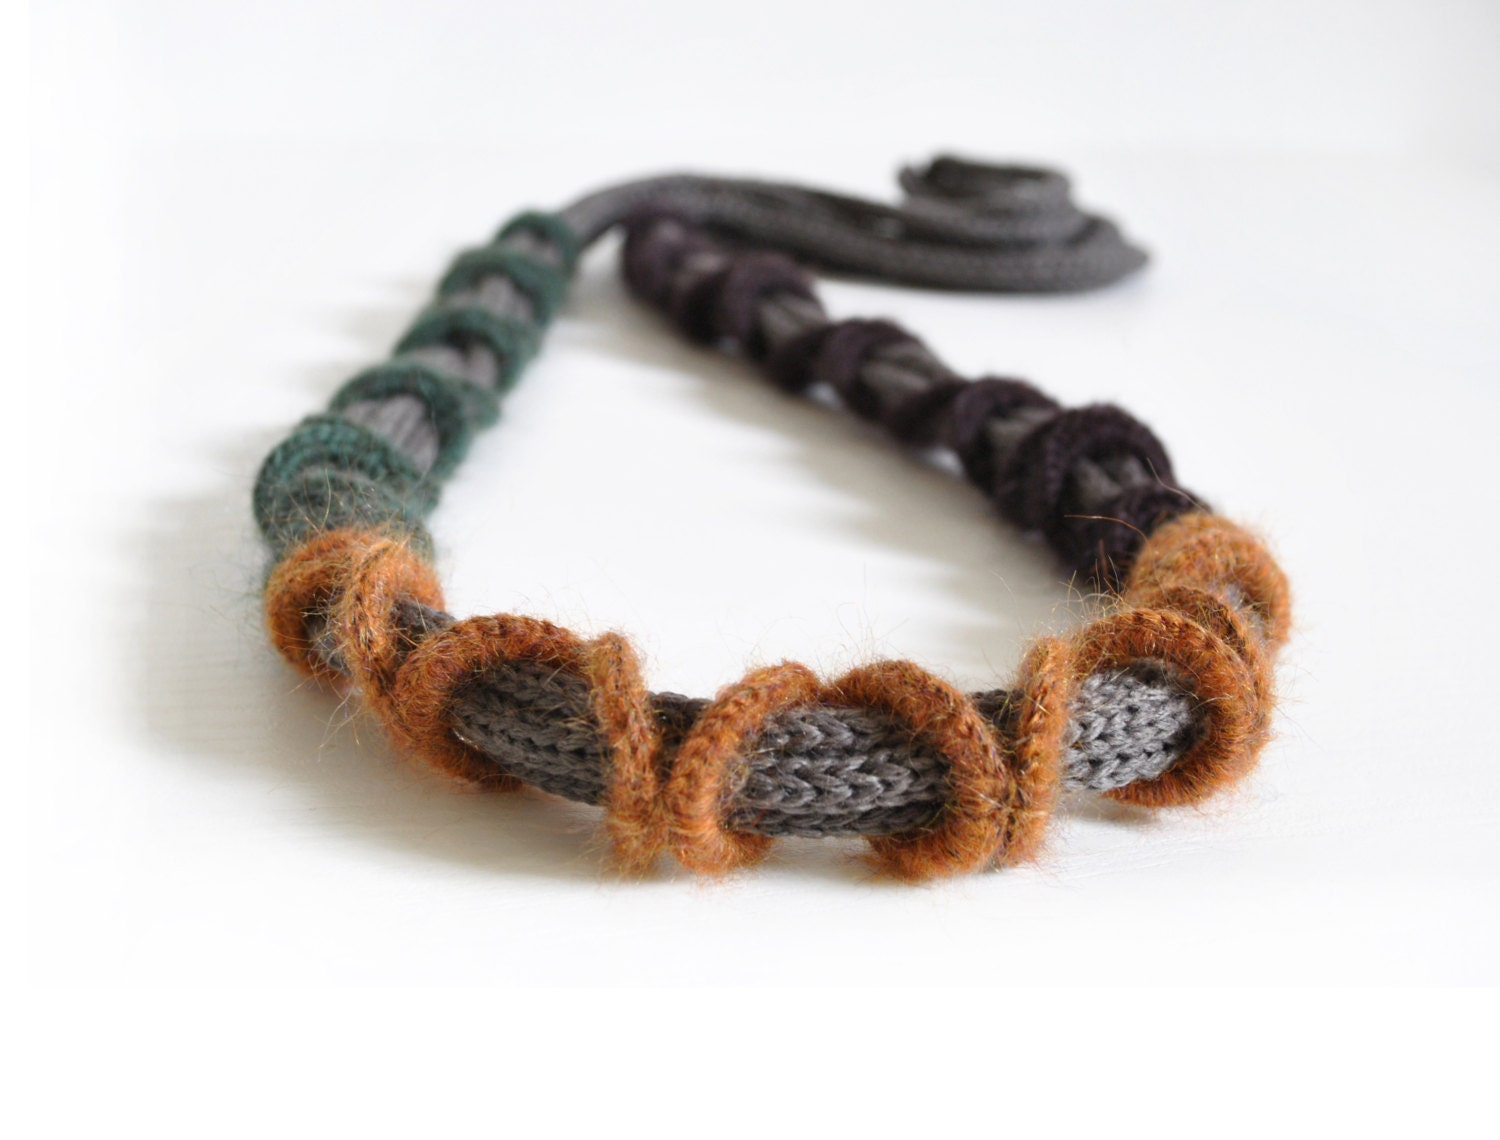 Knit cashmere fiber necklace / Textile necklace / Rustic chic jewelry / Modern fiber necklace / Fall fashion / Green brown mustard taupe - AliquidTextileJewels